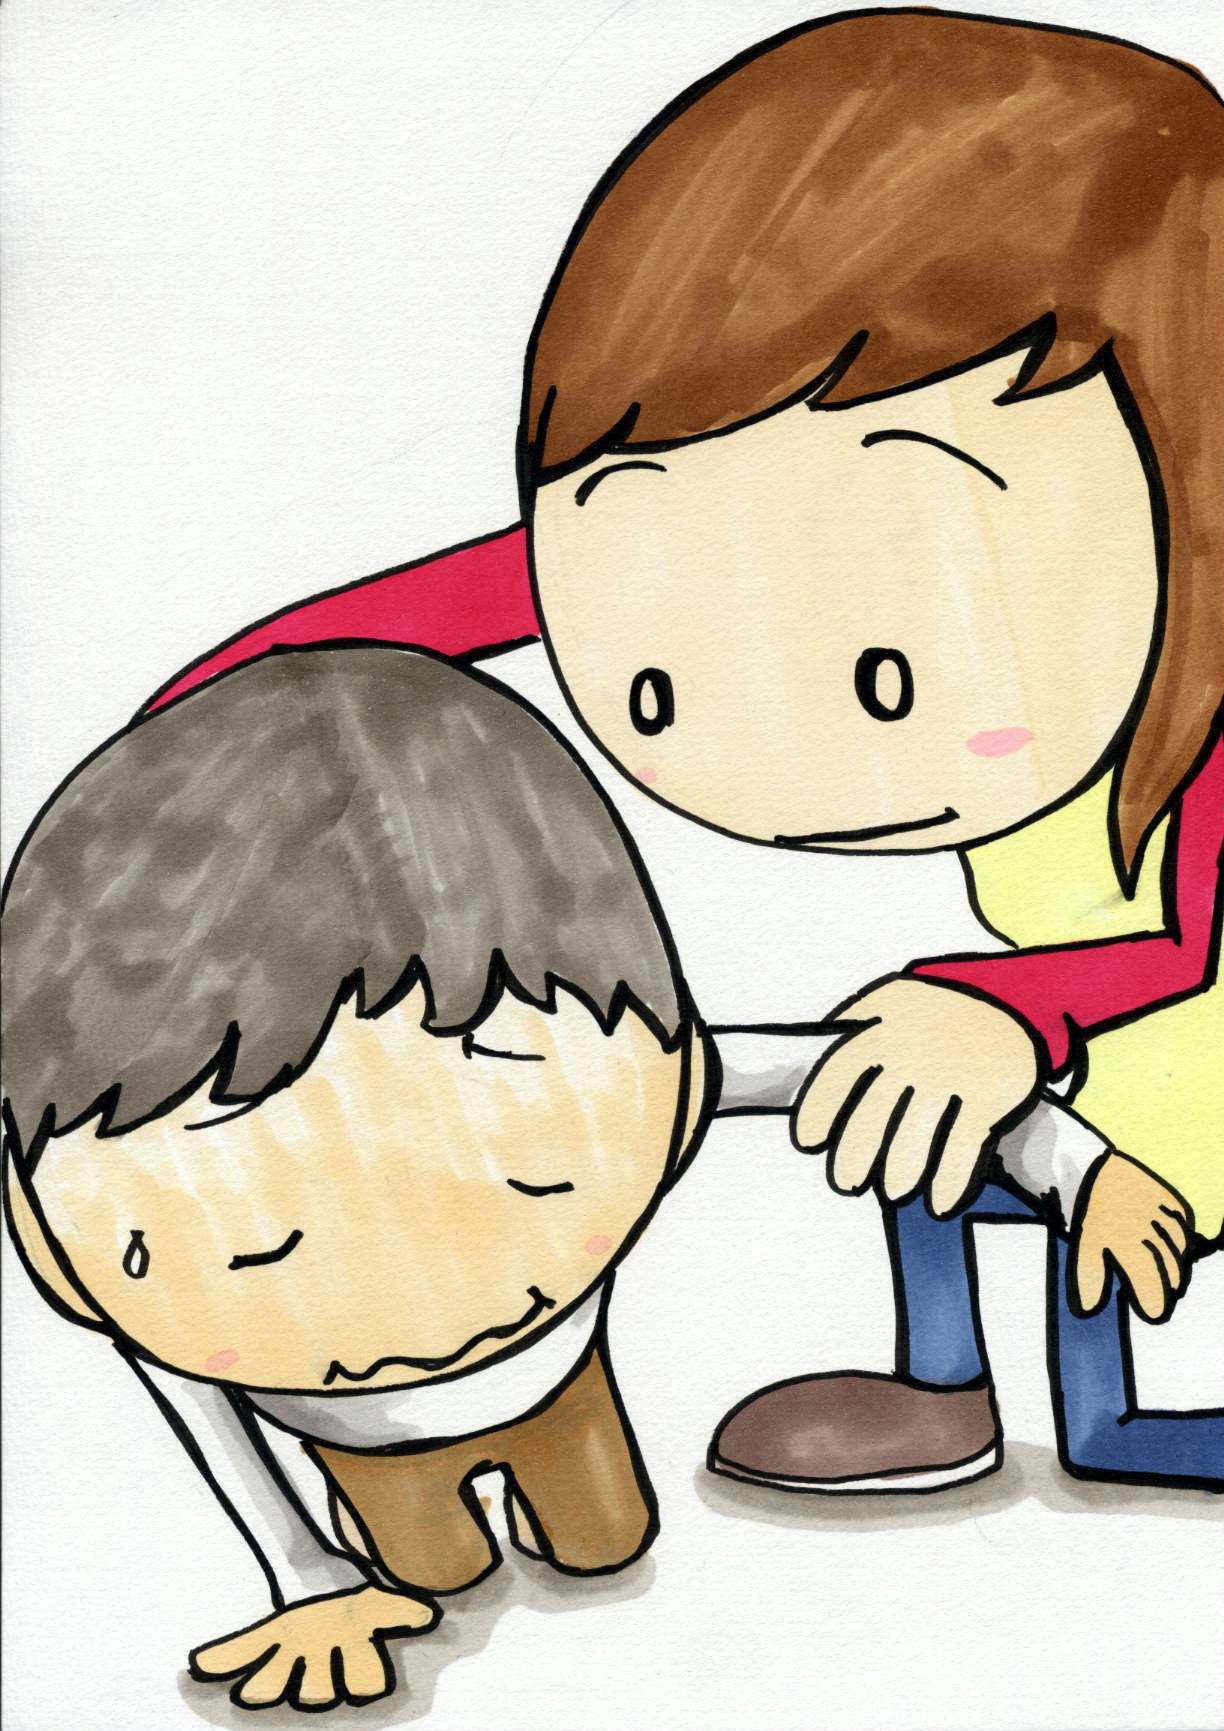 People Helping Each Other Clipart - Clipart Kid